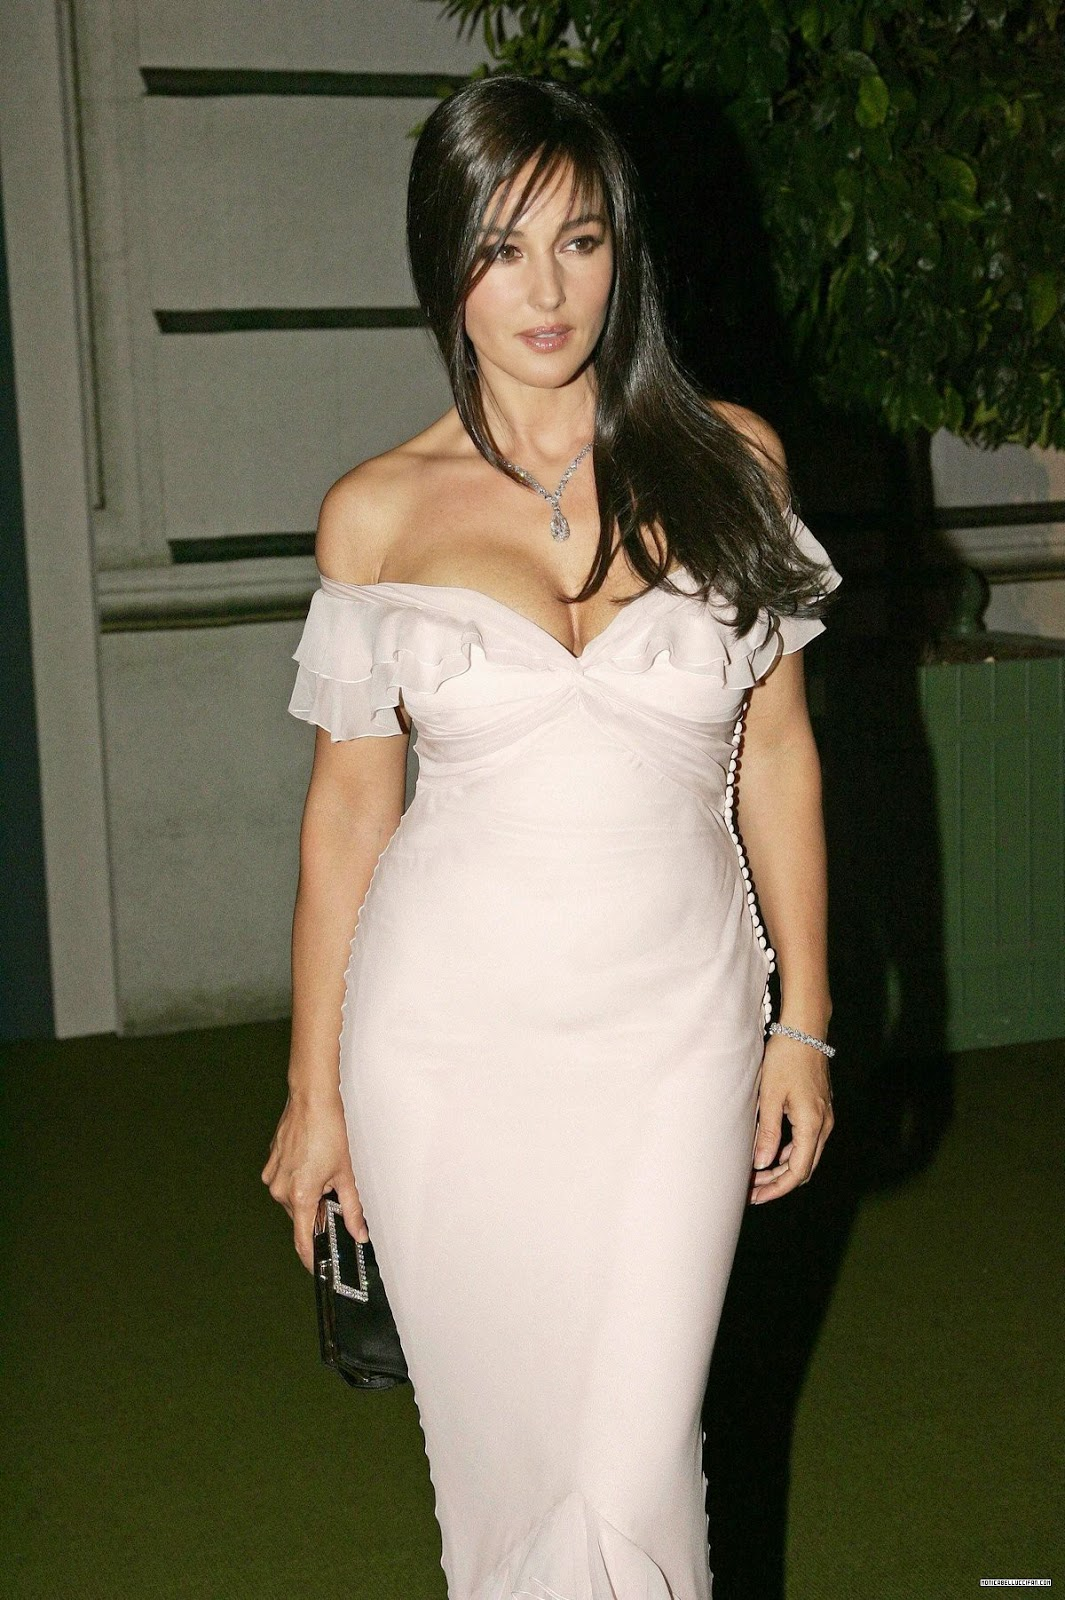 Monica-Bellucci-sexy-dress-hot